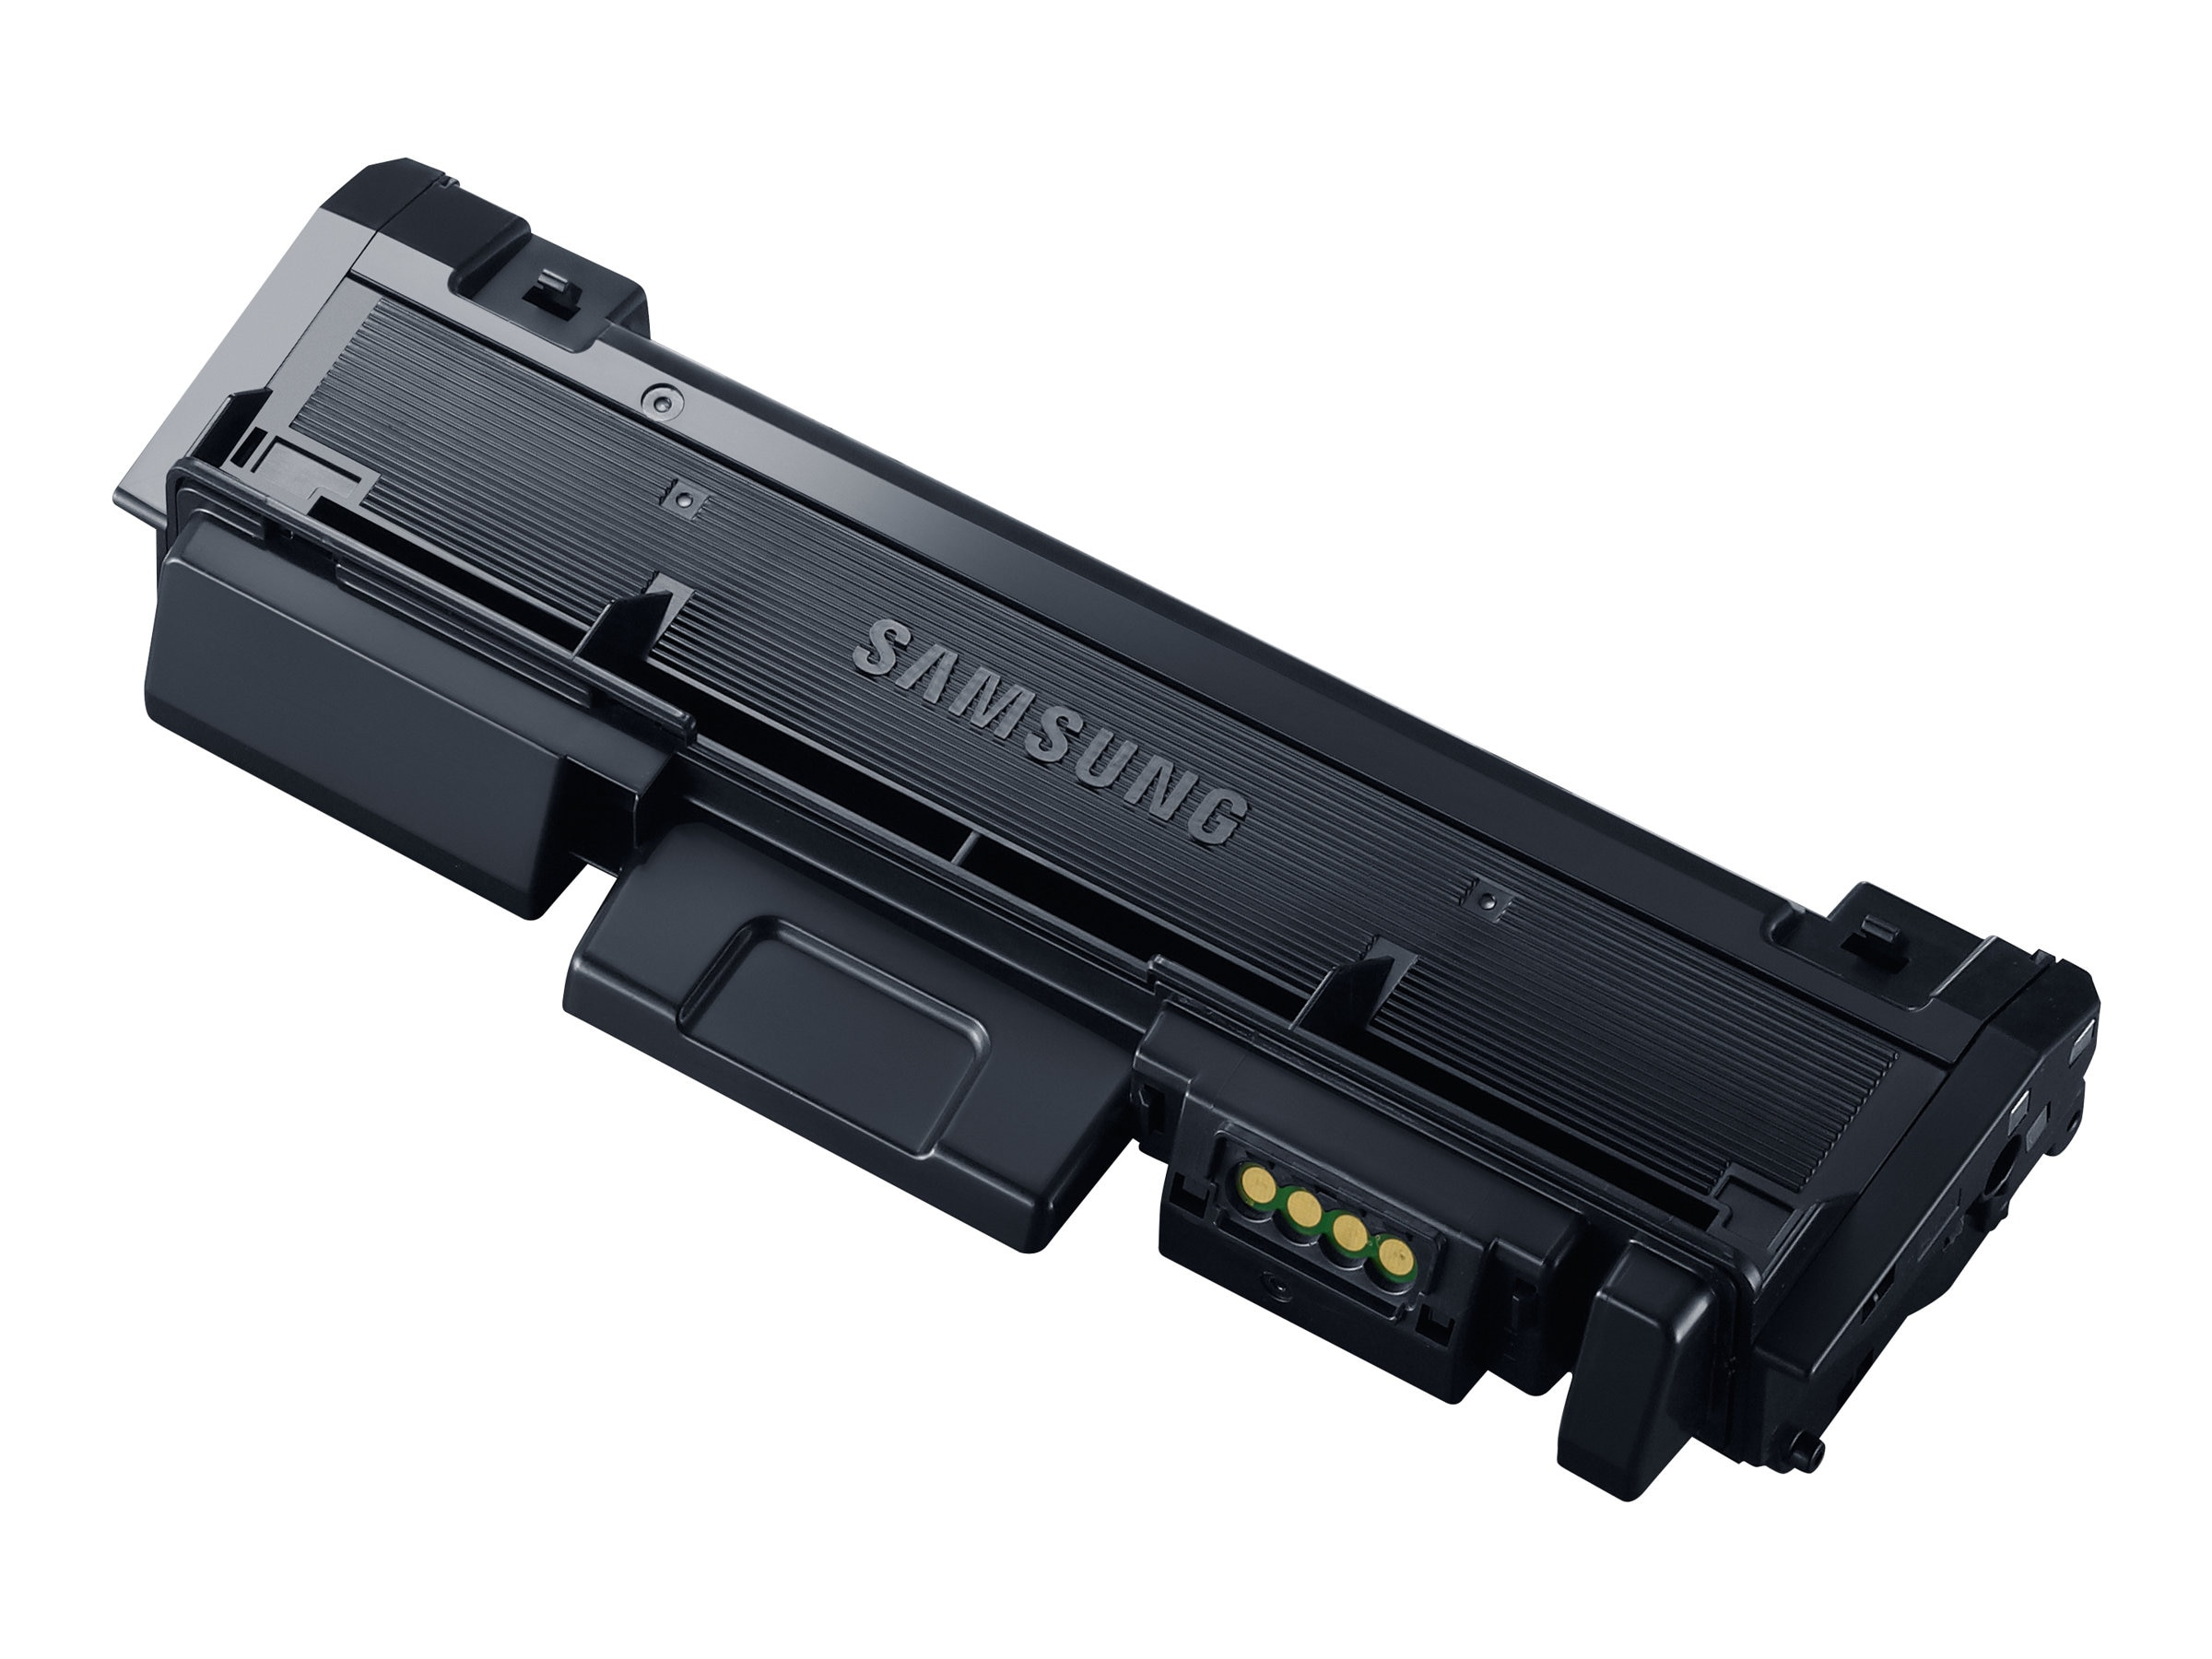 Samsung Black Toner Cartridge for Xpress SL-M2625, SL-M2626, SL-M2825, SL-M2826